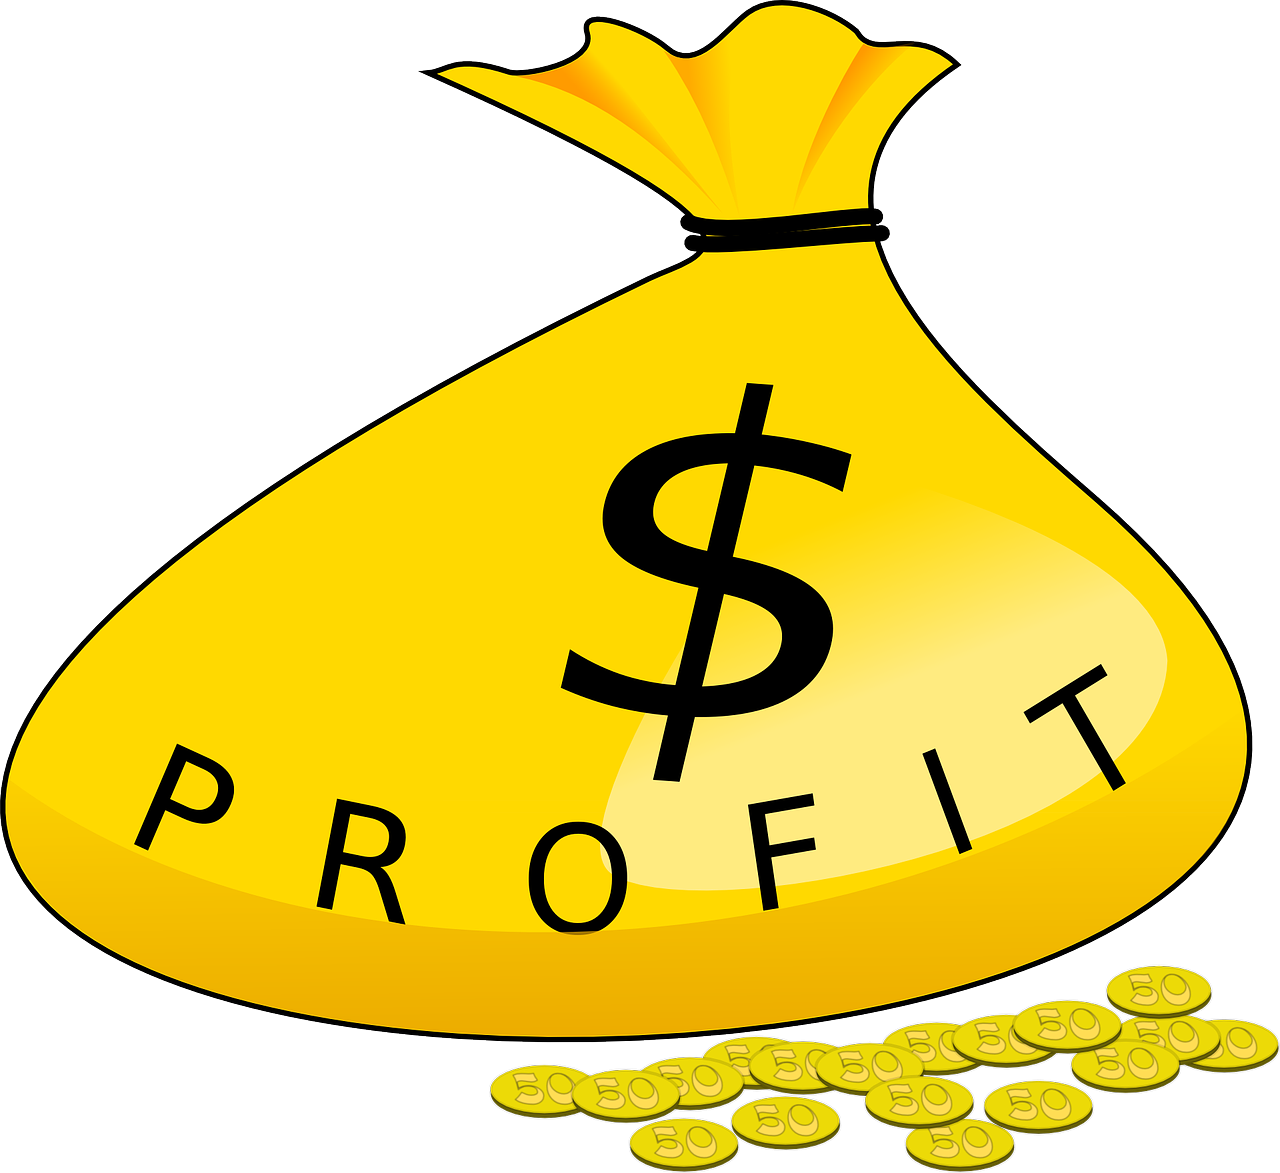 Financial clipart dividend. Taking profits while increasing